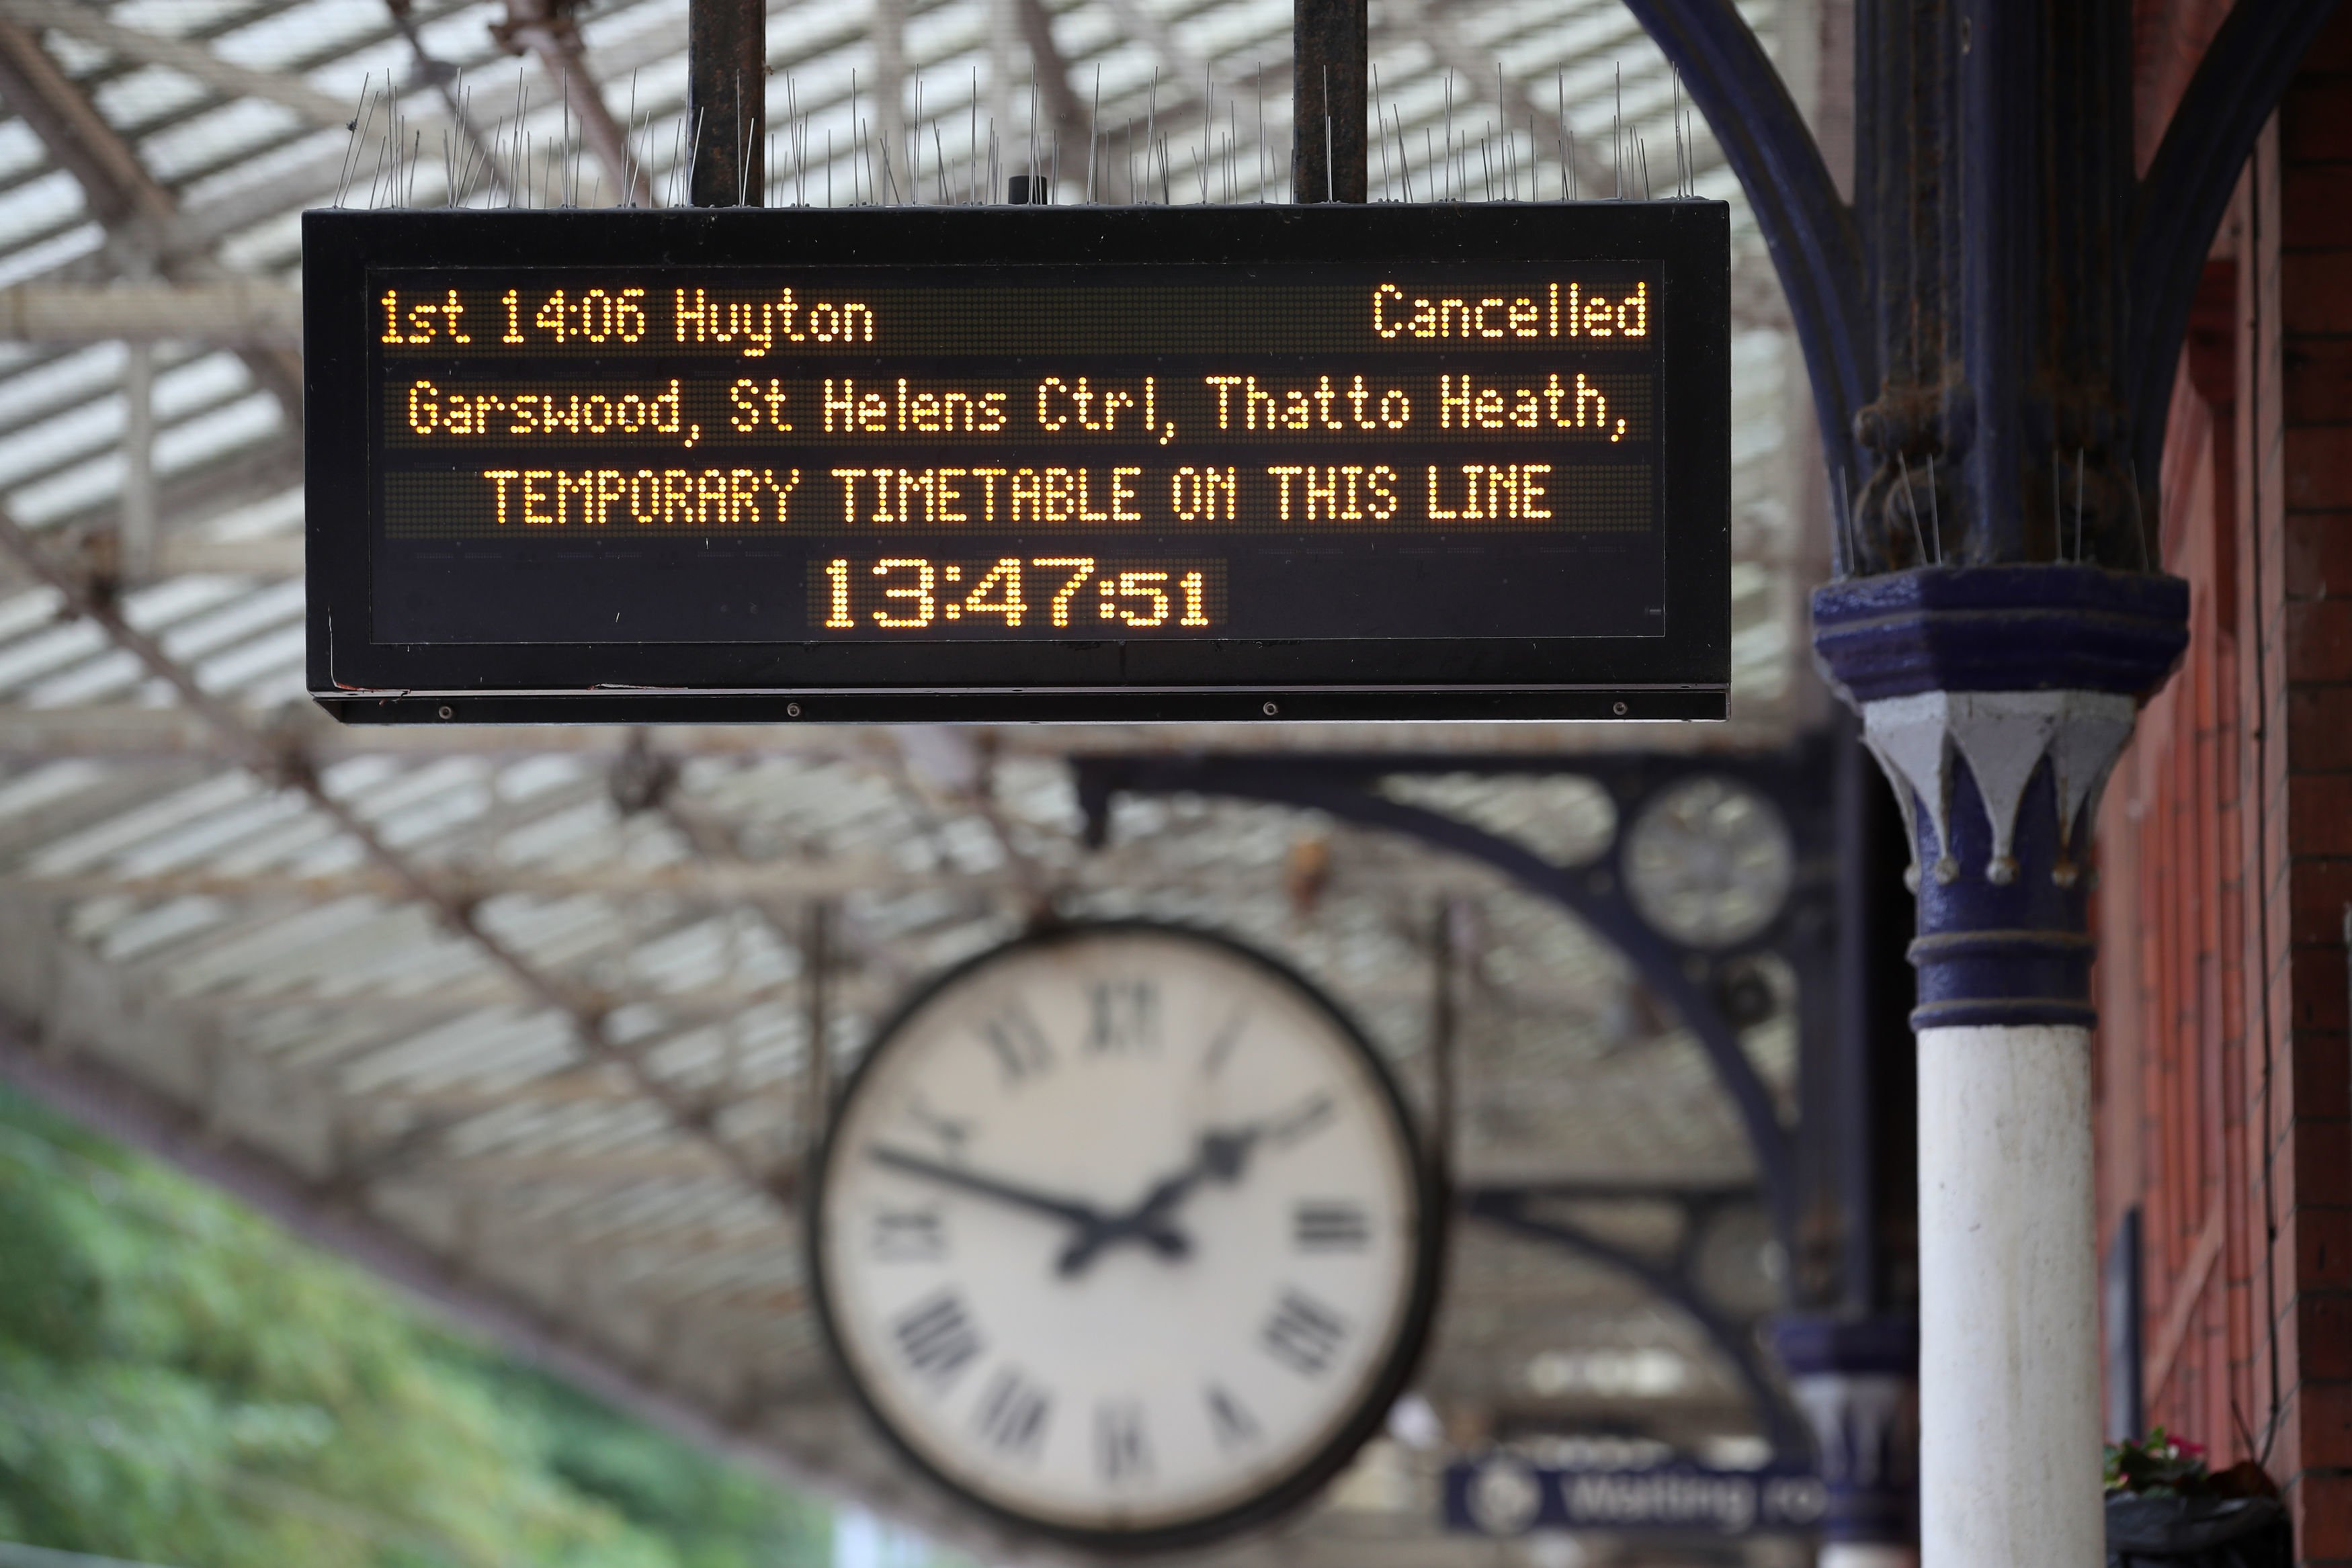 Rail passengers missing out on tens of millions of pounds in delay compensation